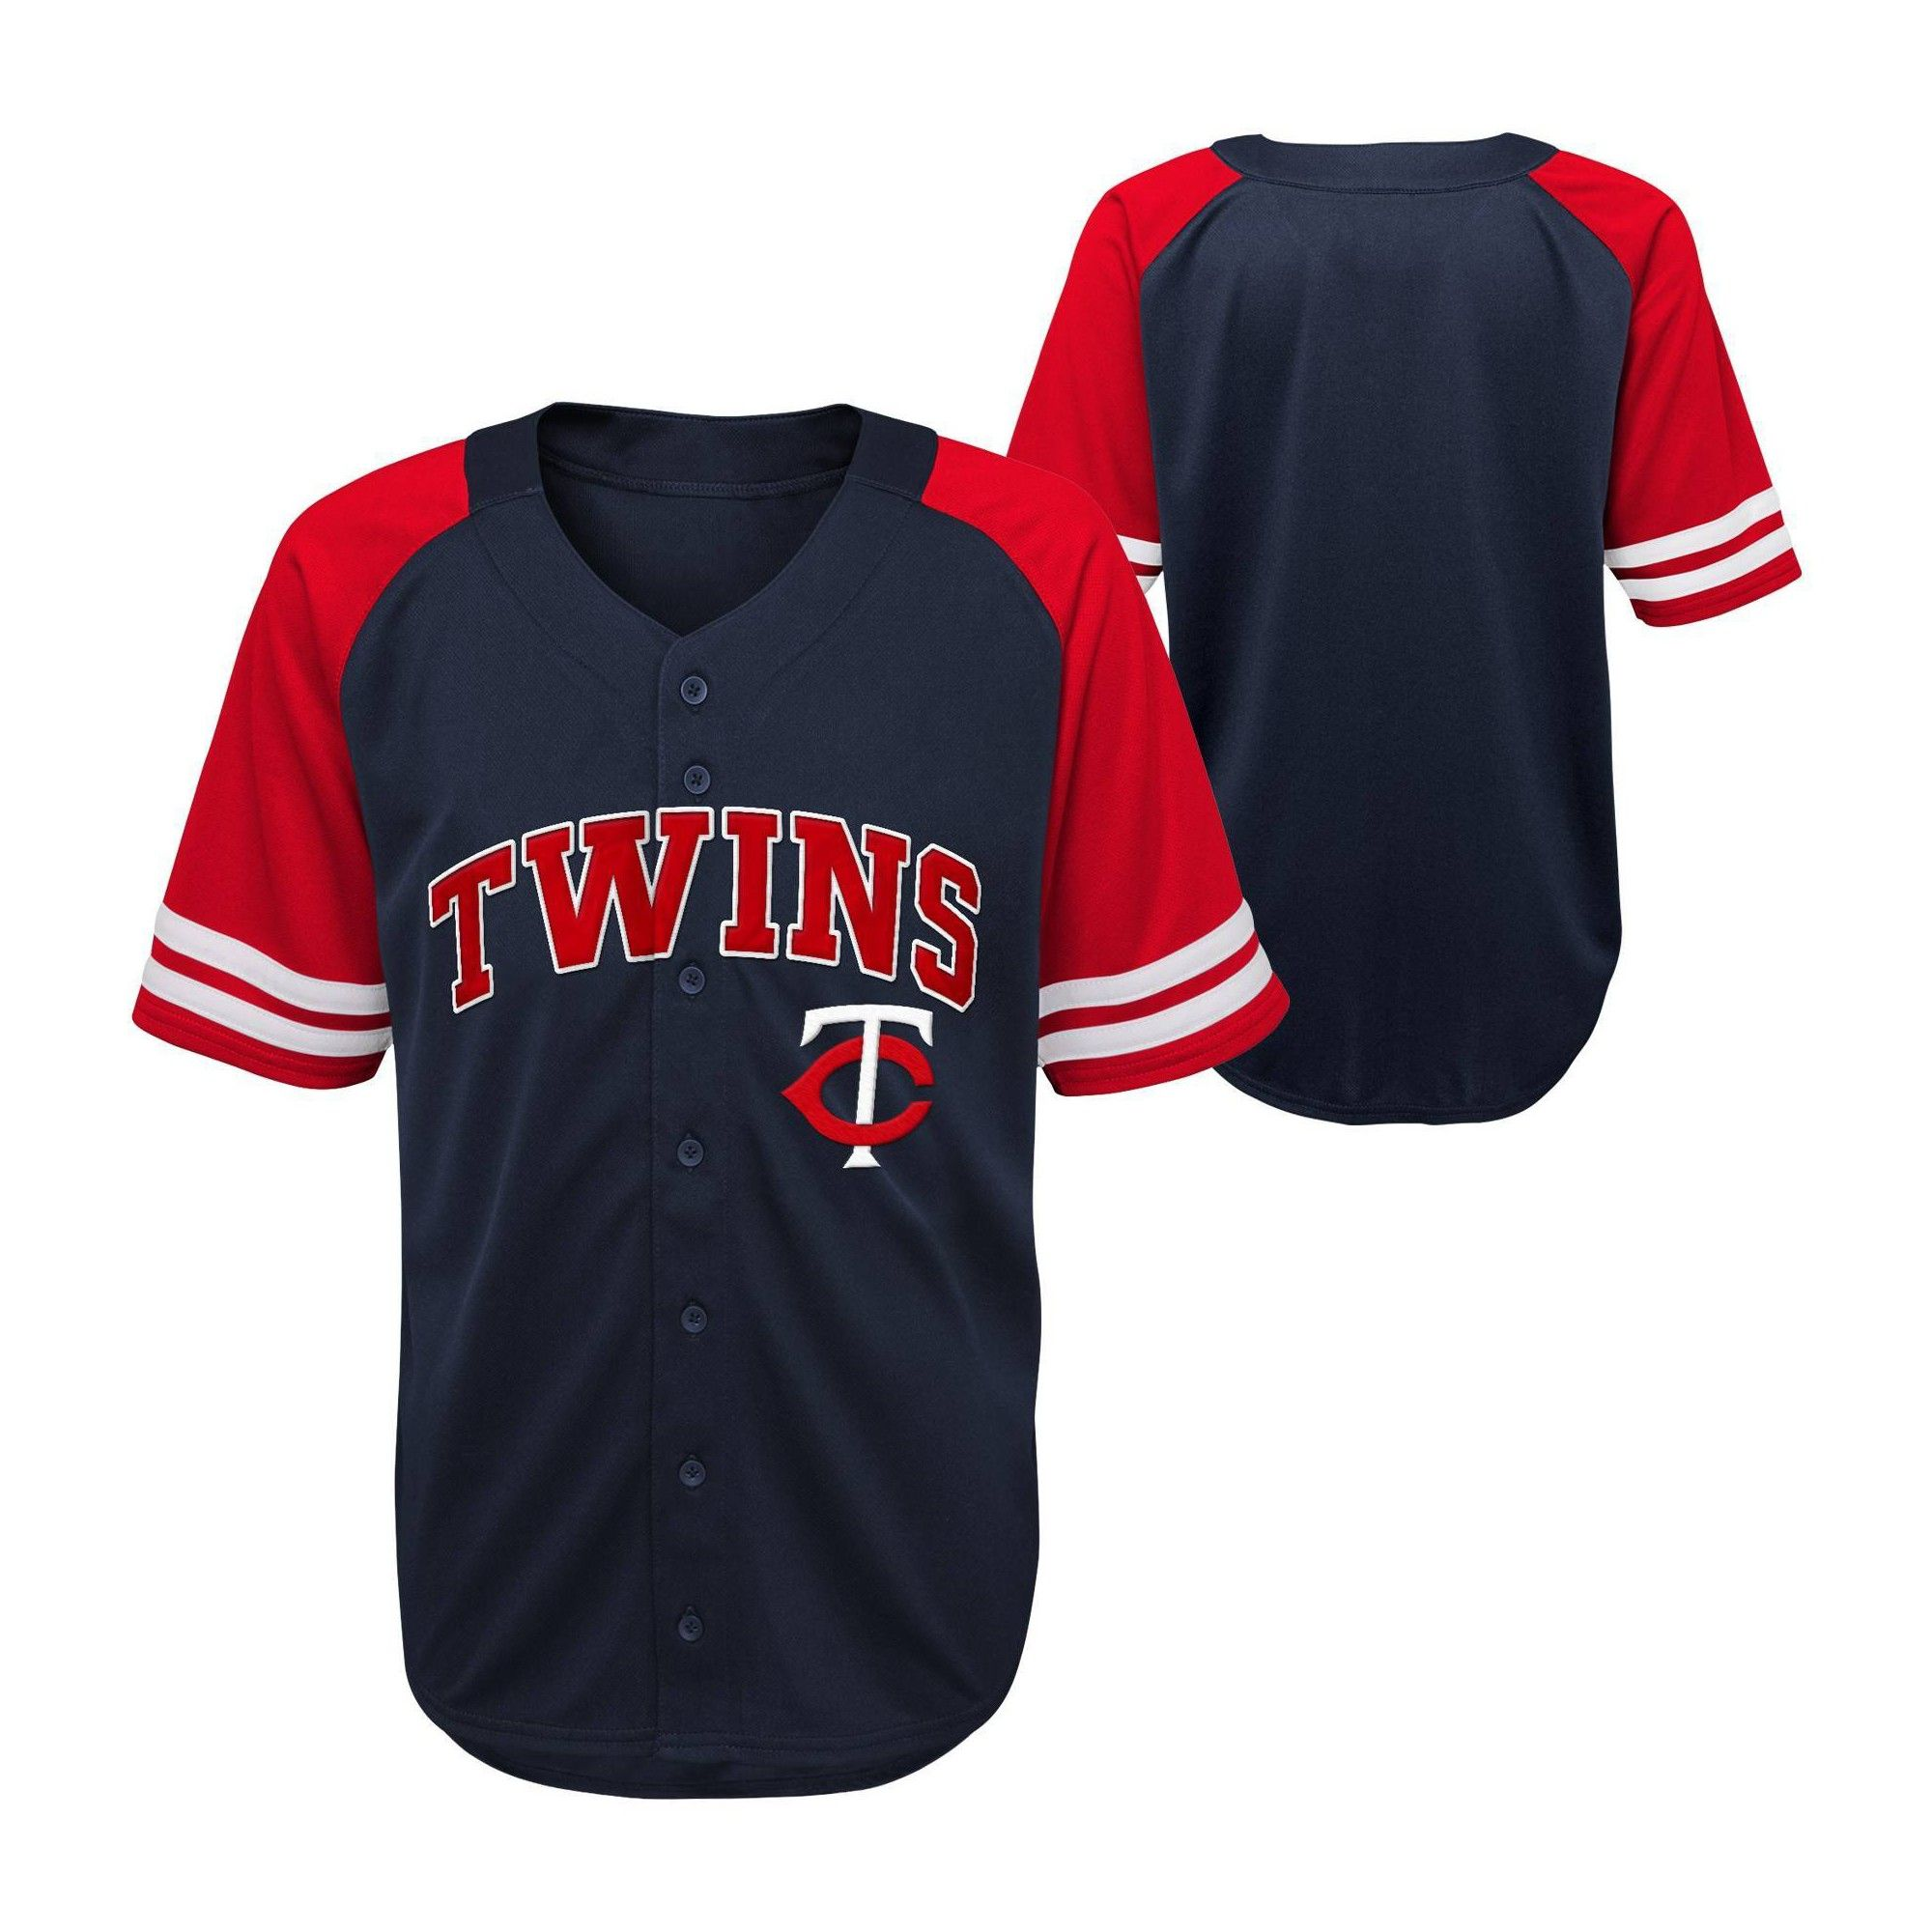 Mlb Minnesota Twins Button Down Jersey 18m In 2020 Atlanta Braves Outfit Atlanta Braves Minnesota Twins